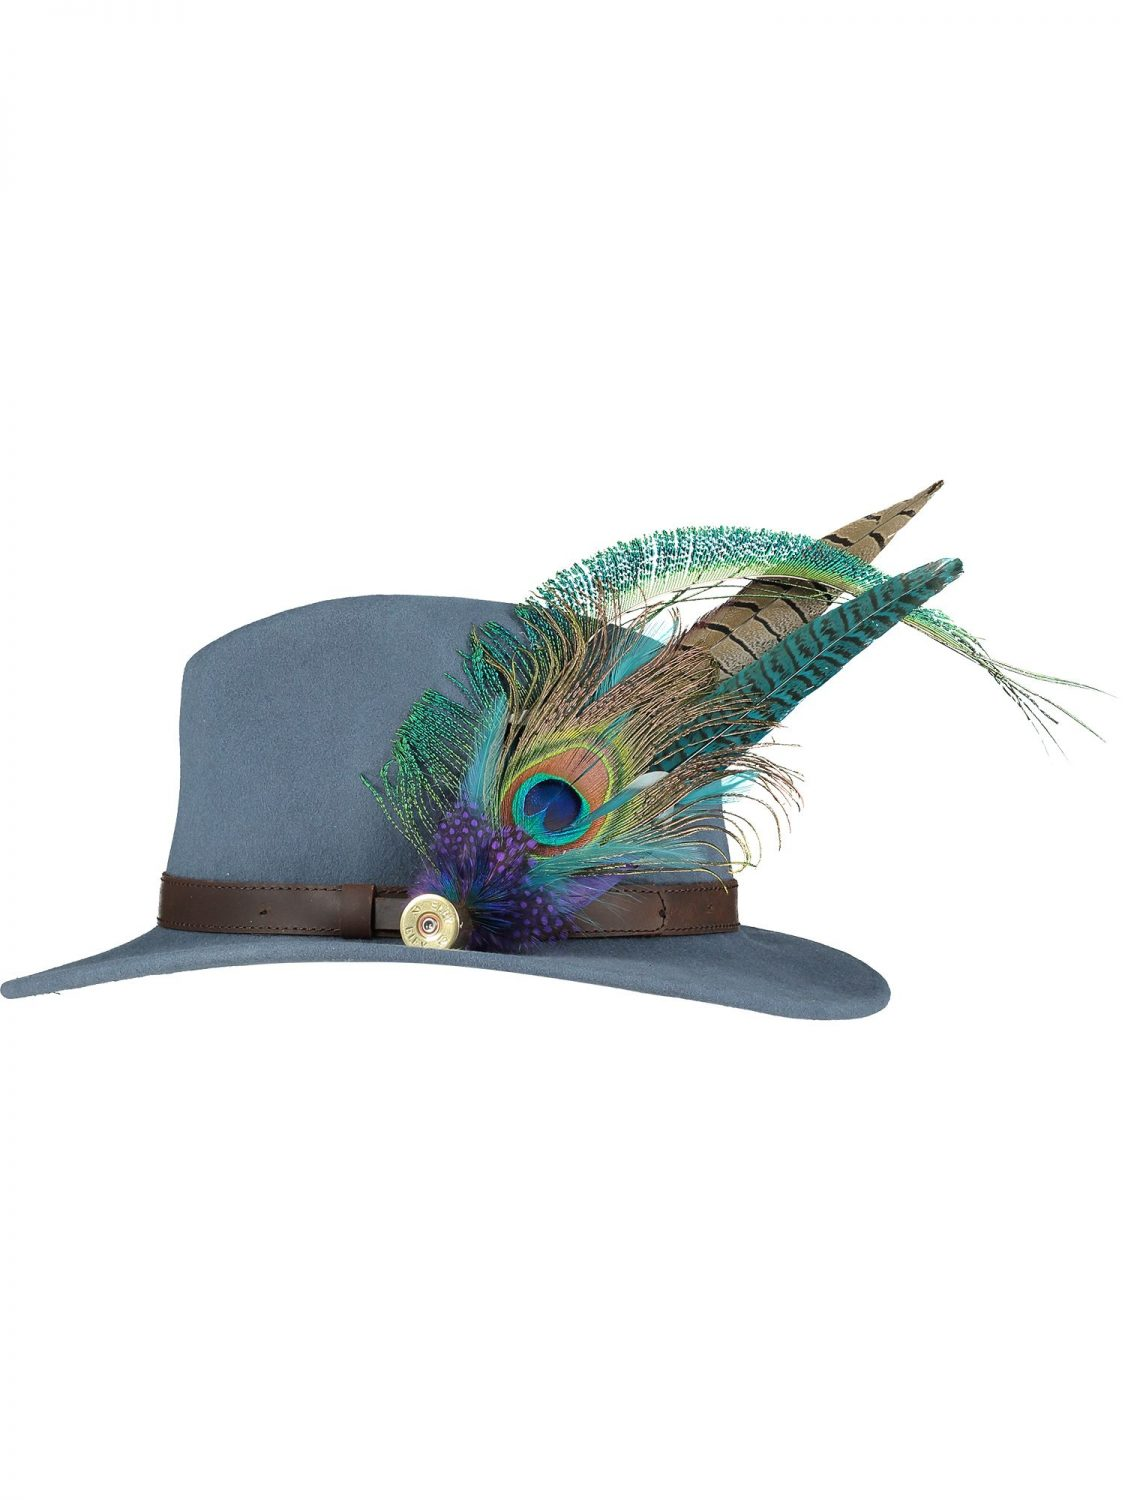 Large Peacock Feather Pin and Hat 1